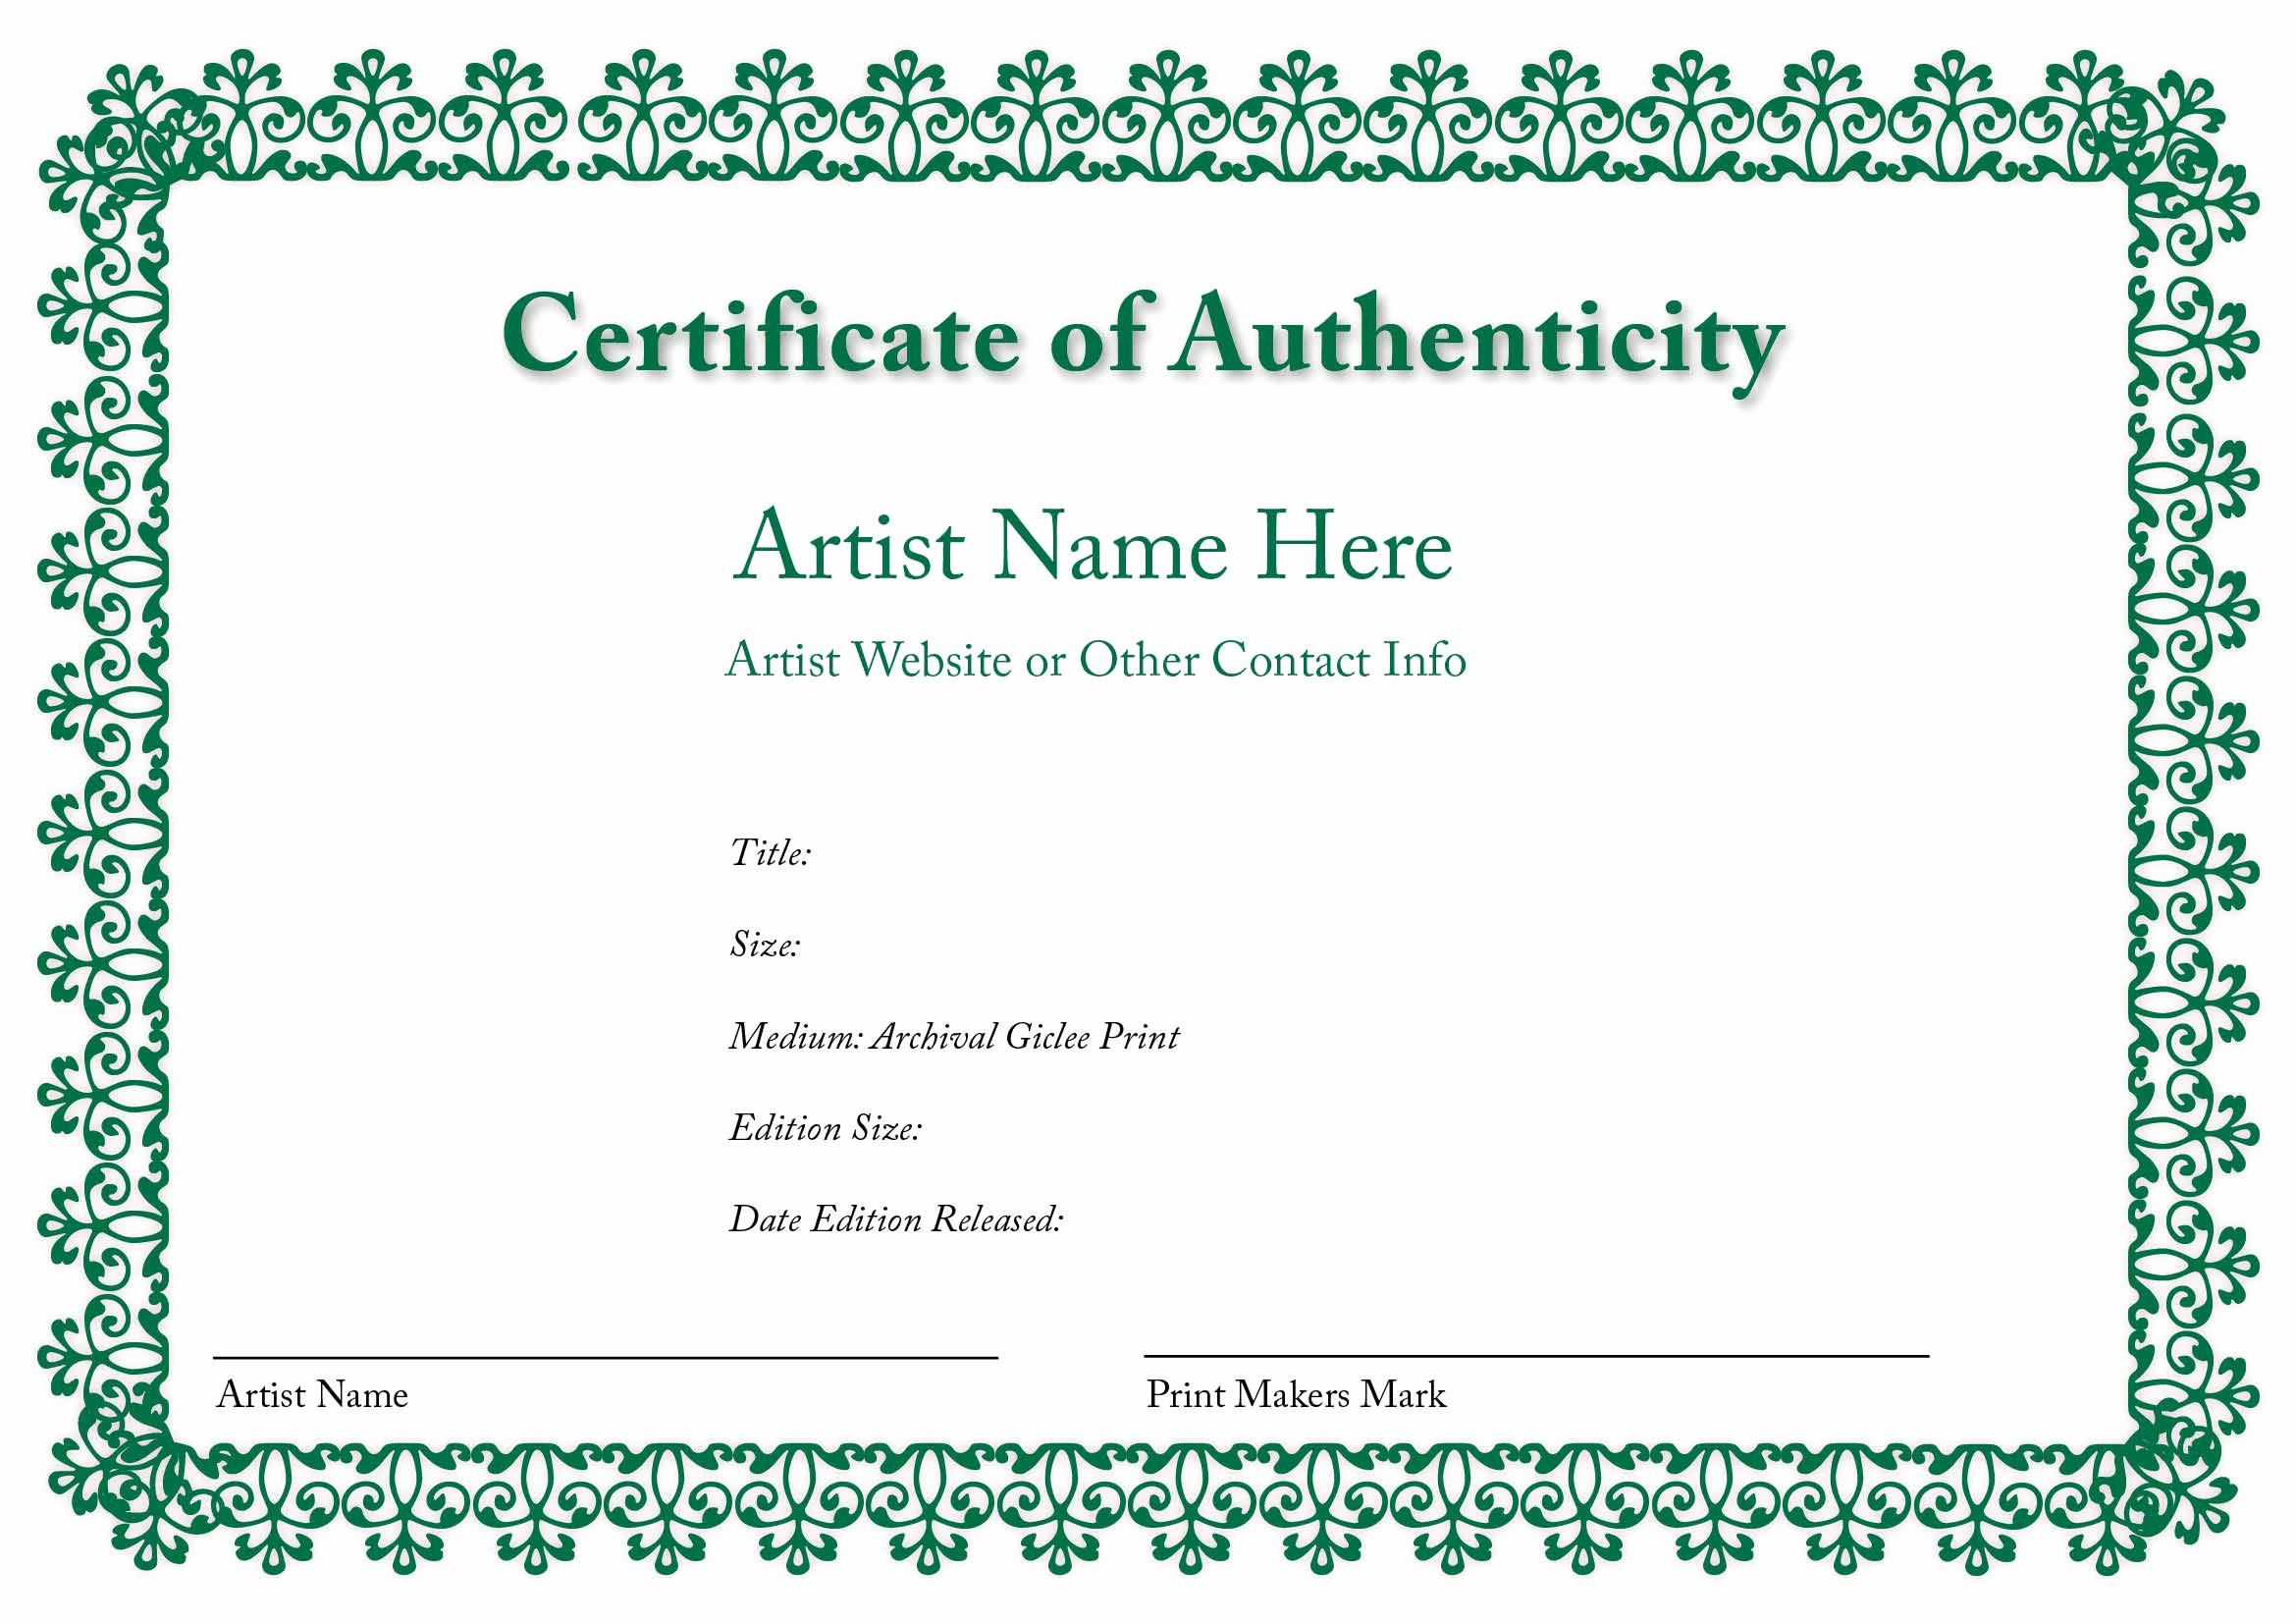 Free Certificate Of Authenticity for Artwork Template Luxury Certificate Of Authenticity Of An Art Print In 2019